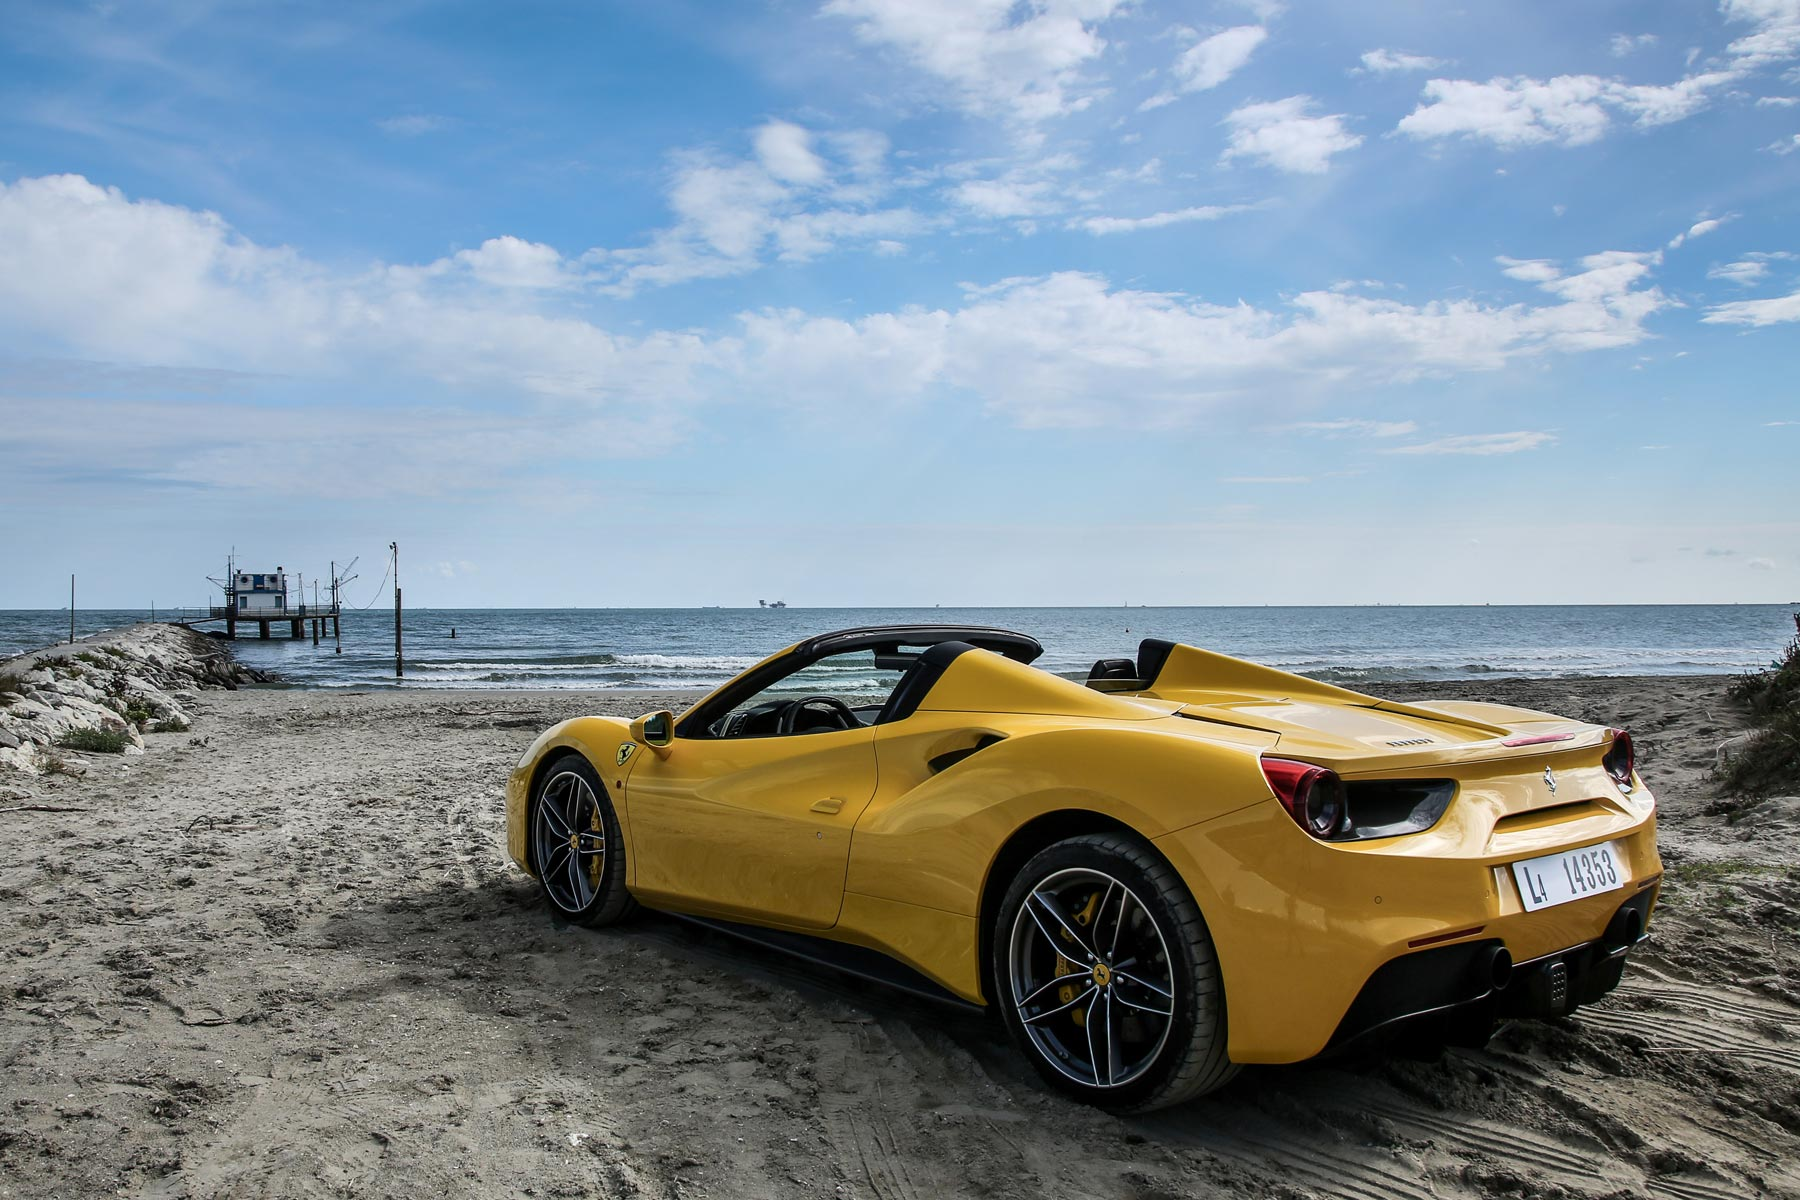 ferrari 488 spider review 2015 first drive motoring research. Black Bedroom Furniture Sets. Home Design Ideas